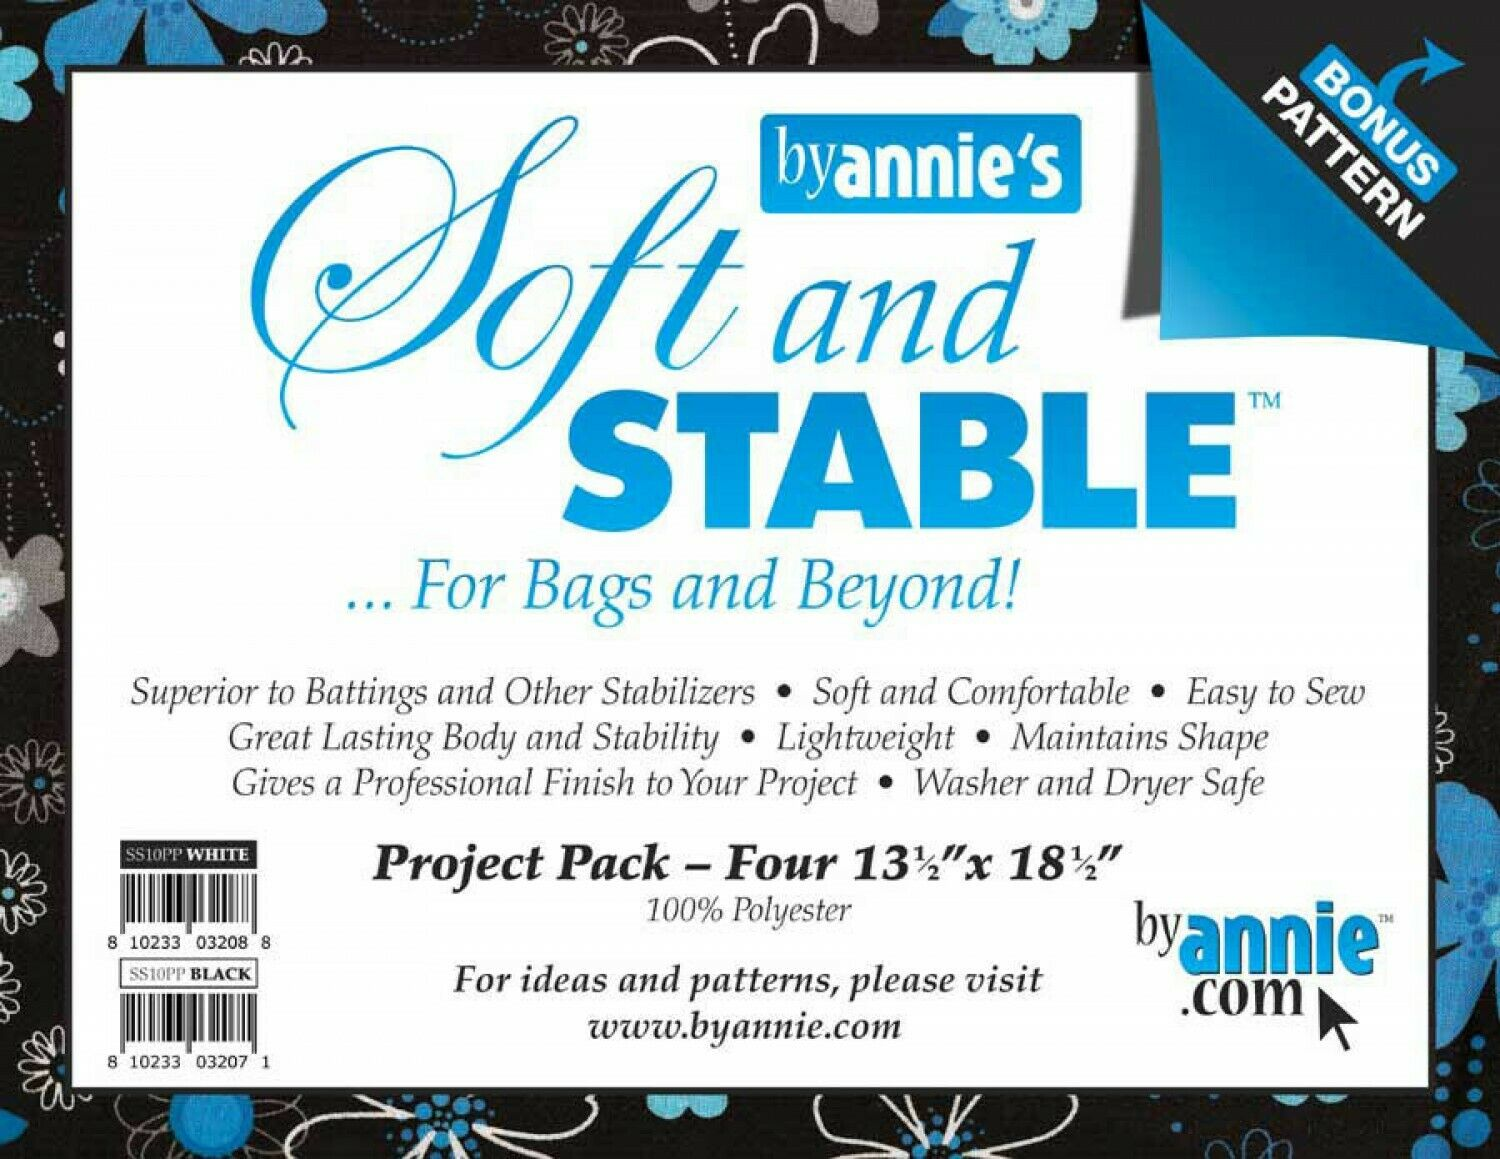 Soft and Stable Project Pack Foam Stabilizer 13.5 x 18.5 by annie's